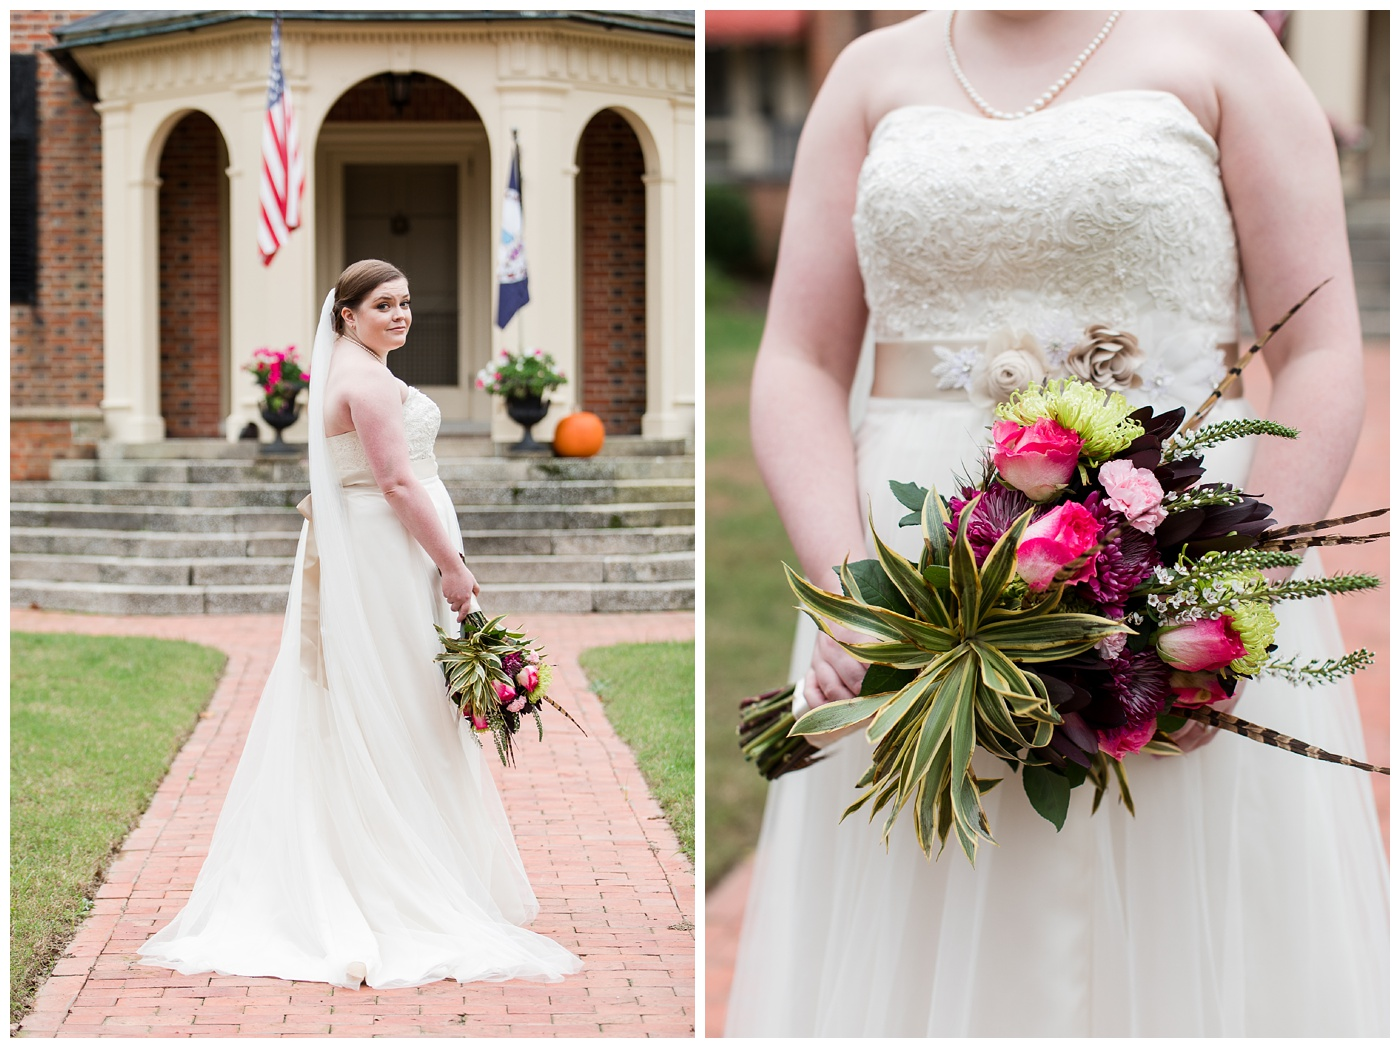 Mary & Russell | Freight Shed Wedding